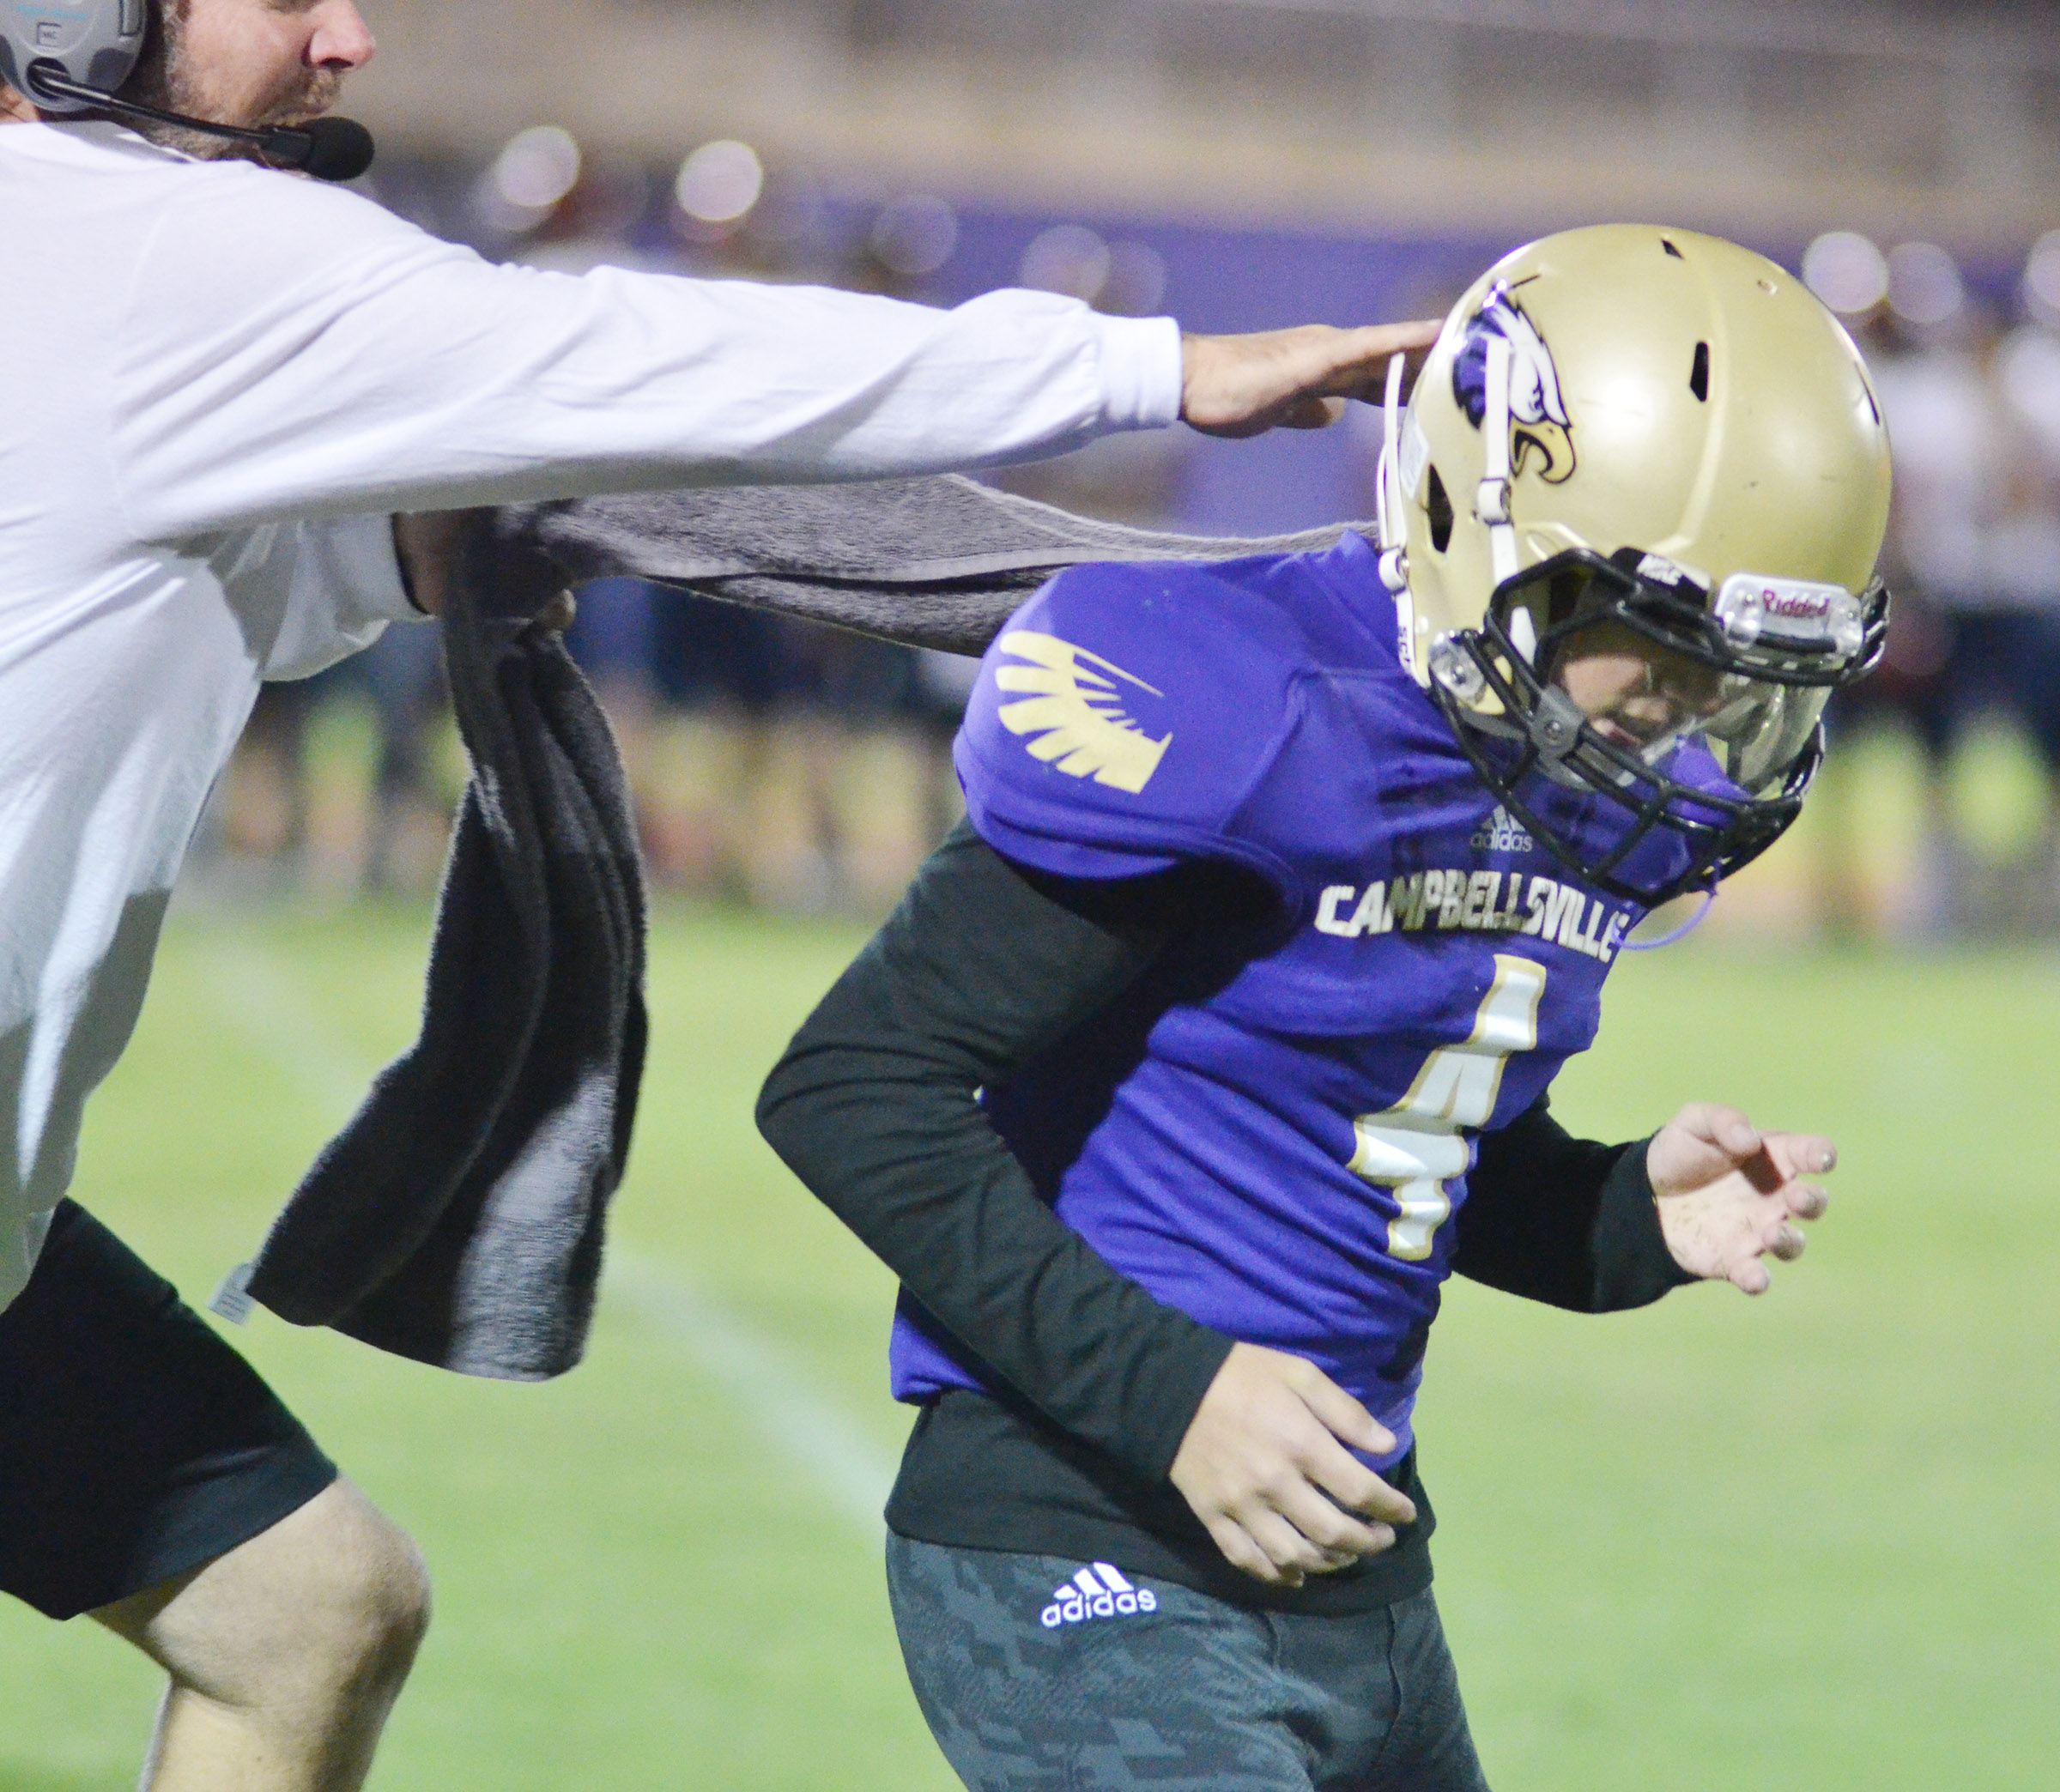 CHS assistant football coach Herb Wiseman celebrates a tackle with senior Austin Carter.